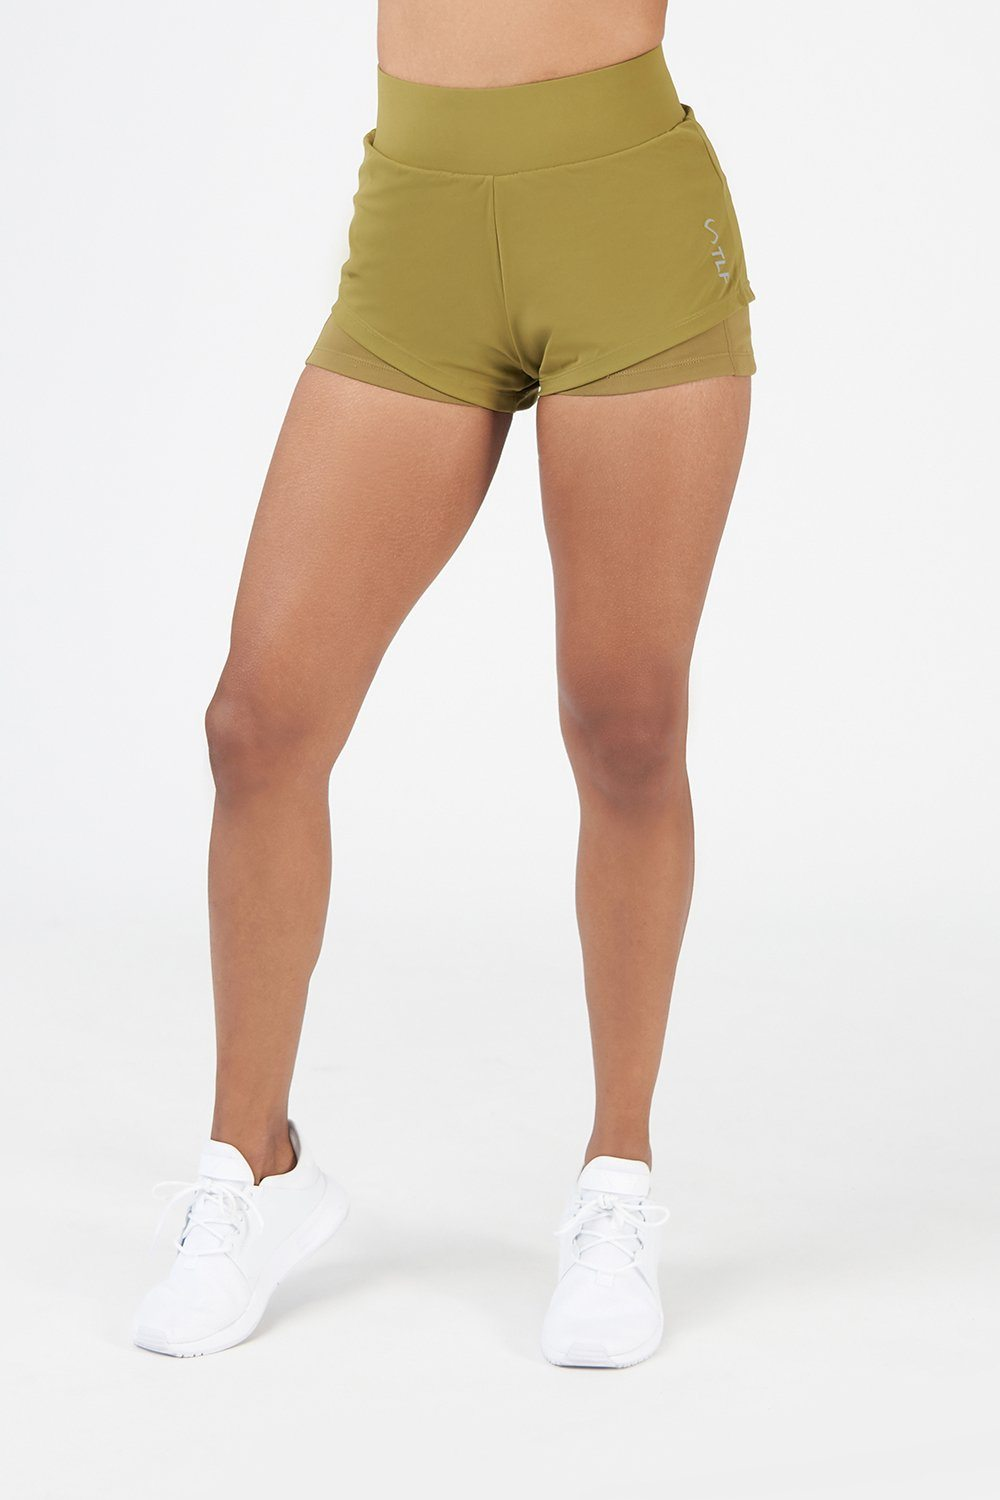 TLF Revive High-Waisted 2-In-1 Workout Shorts - Women's Shorts - TLF Apparel | Take Life Further